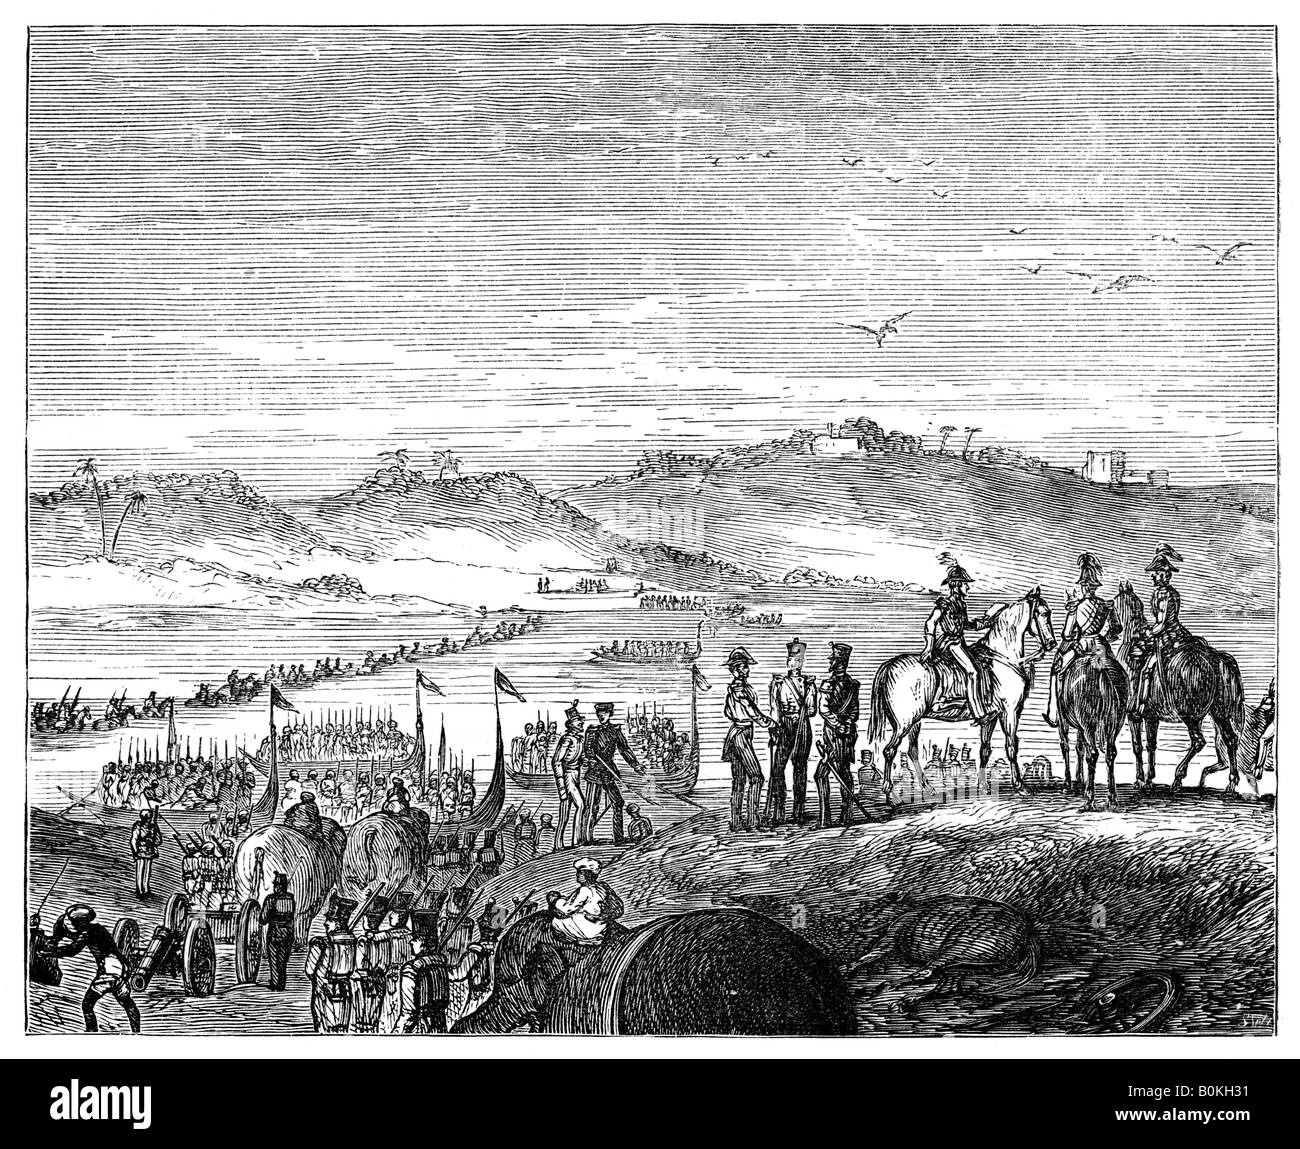 The British Army crossing the Sutlej River, India, 19th century, (1900). Artist: Unknown - Stock Image